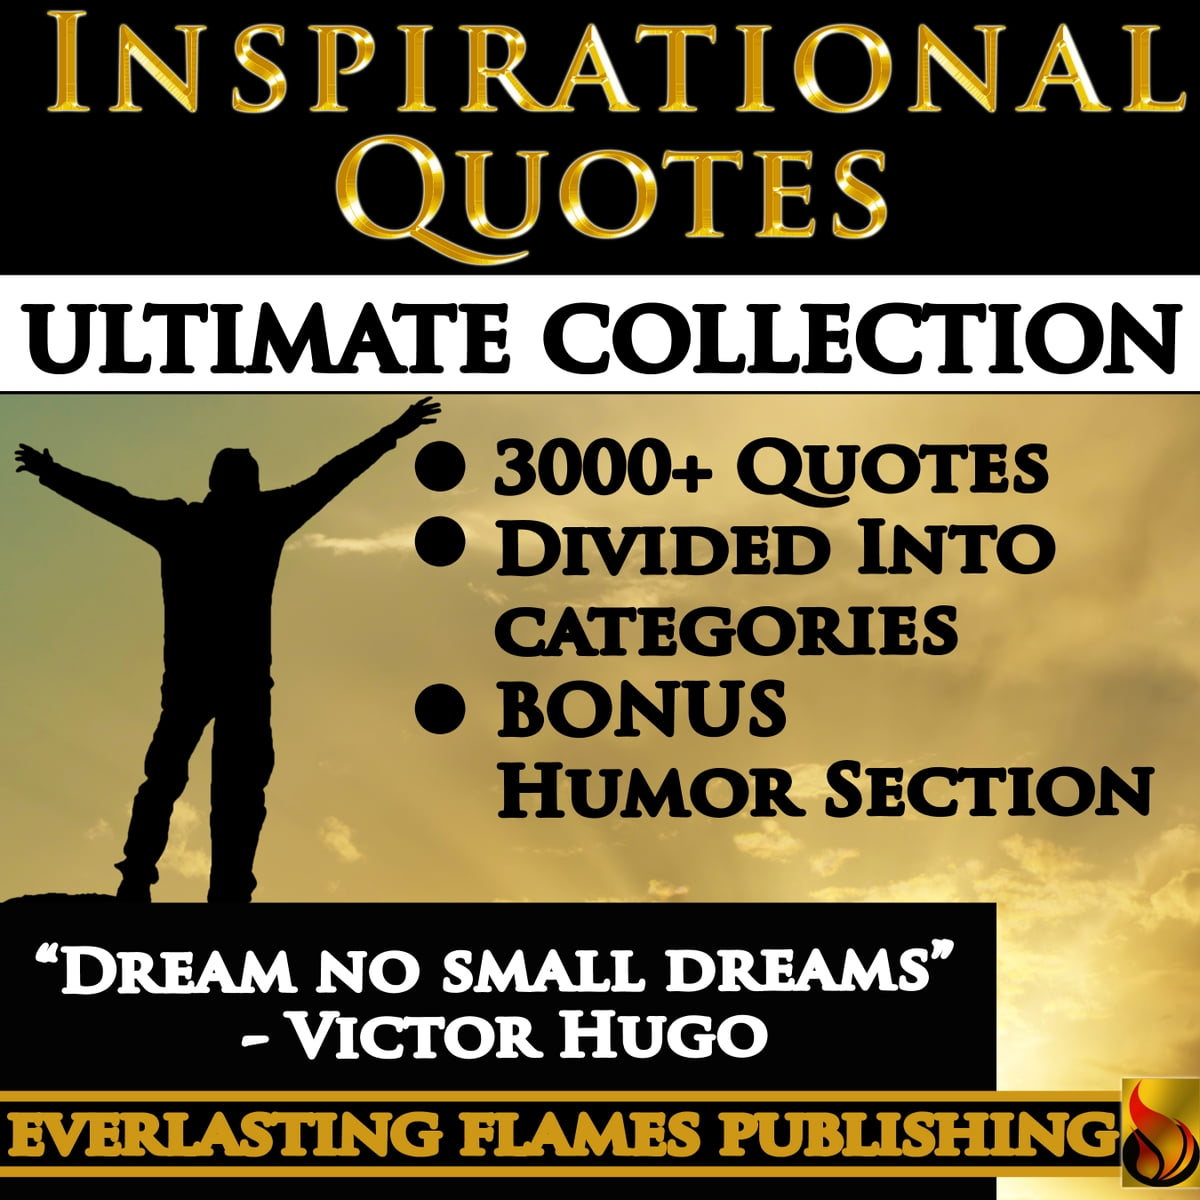 Inspirational Quotations Inspirational Quotes  Motivational Quotes  Ultimate Collection